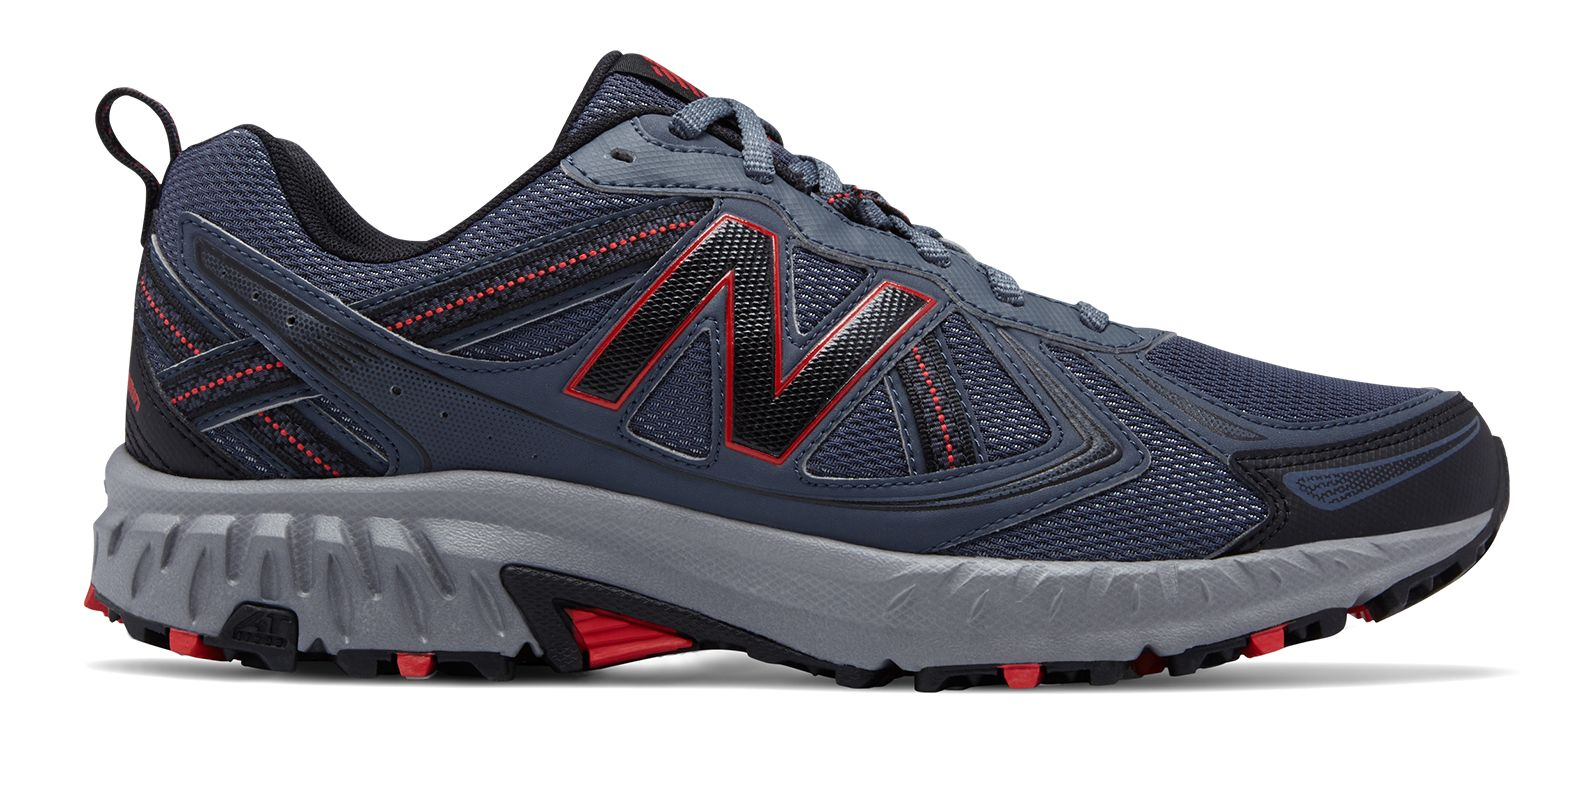 tennis new balance new balance trail running shoes – Red Procesal